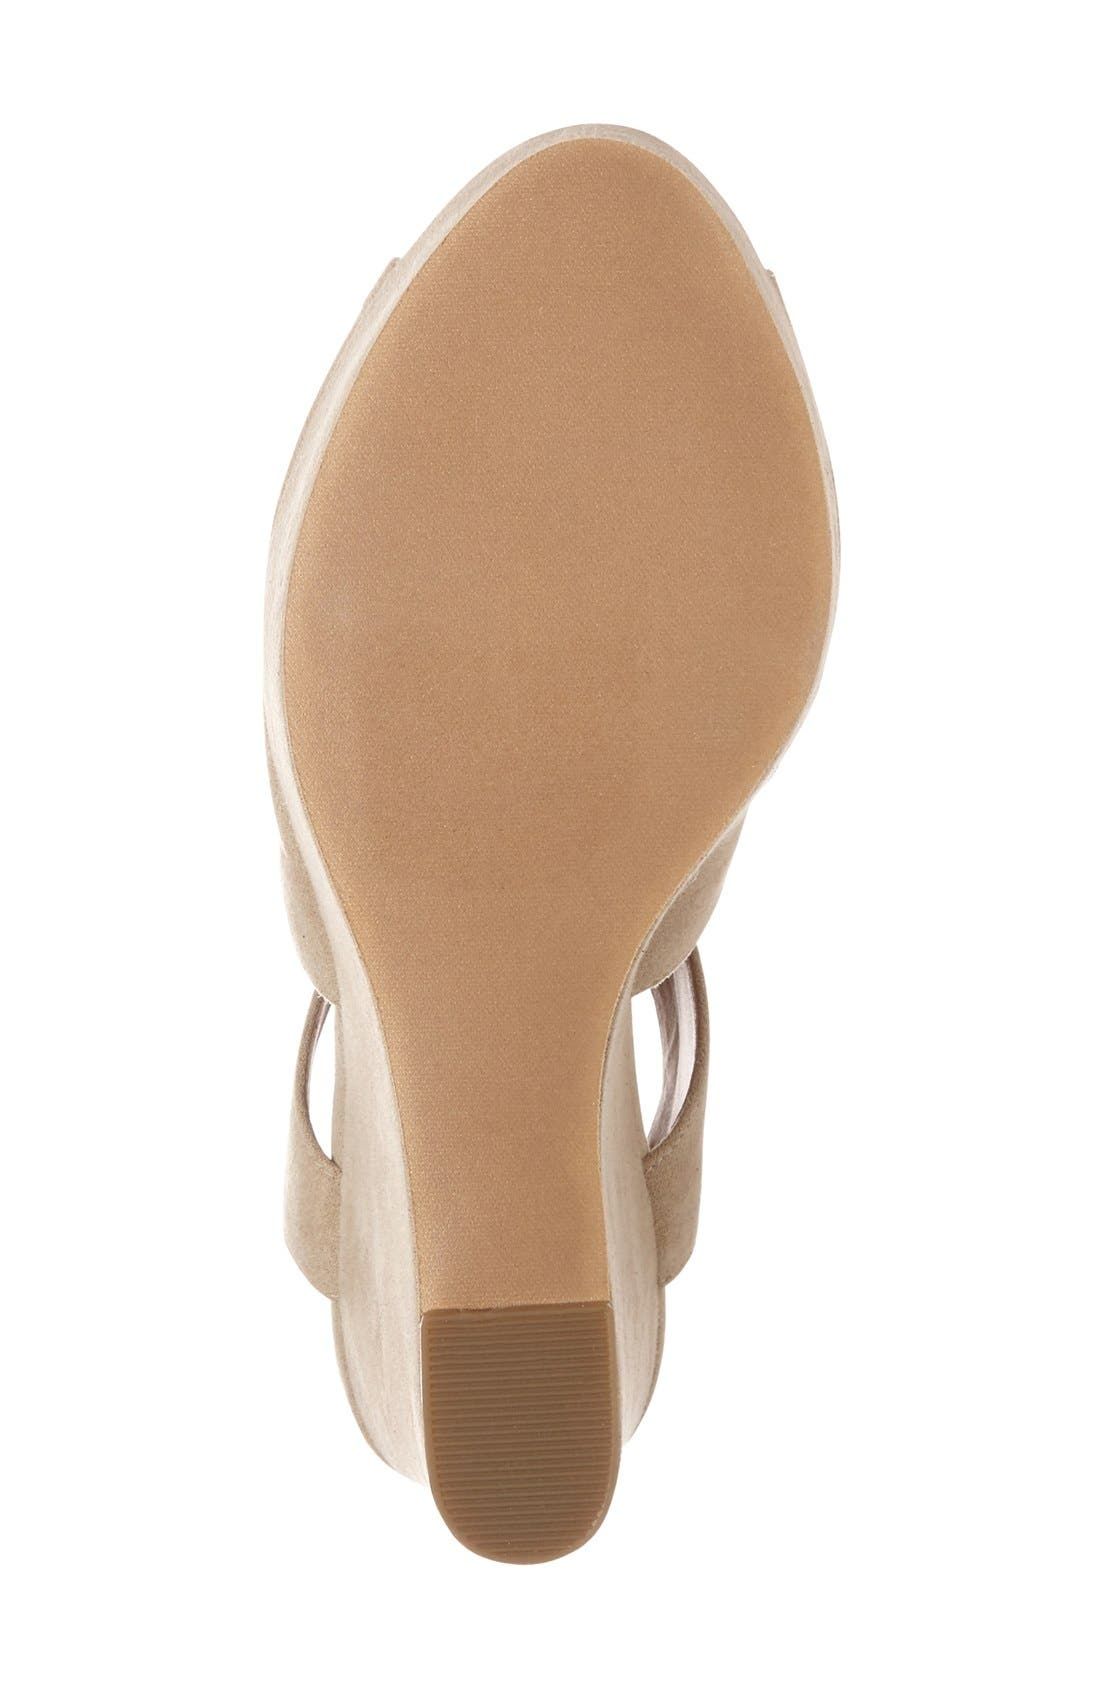 'Solar' Platform Wedge Sandal,                             Alternate thumbnail 4, color,                             Light Taupe Faux Suede